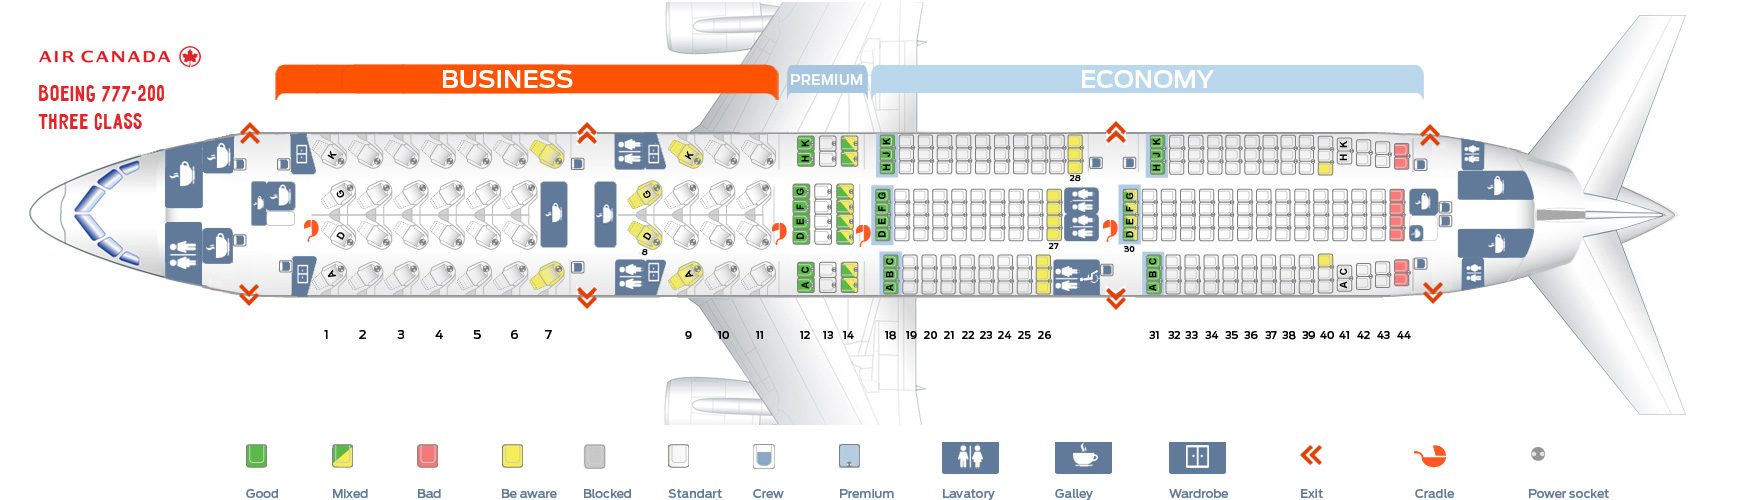 Pleasing Seat Map Boeing 777 200 Air Canada Best Seats In Plane Ocoug Best Dining Table And Chair Ideas Images Ocougorg